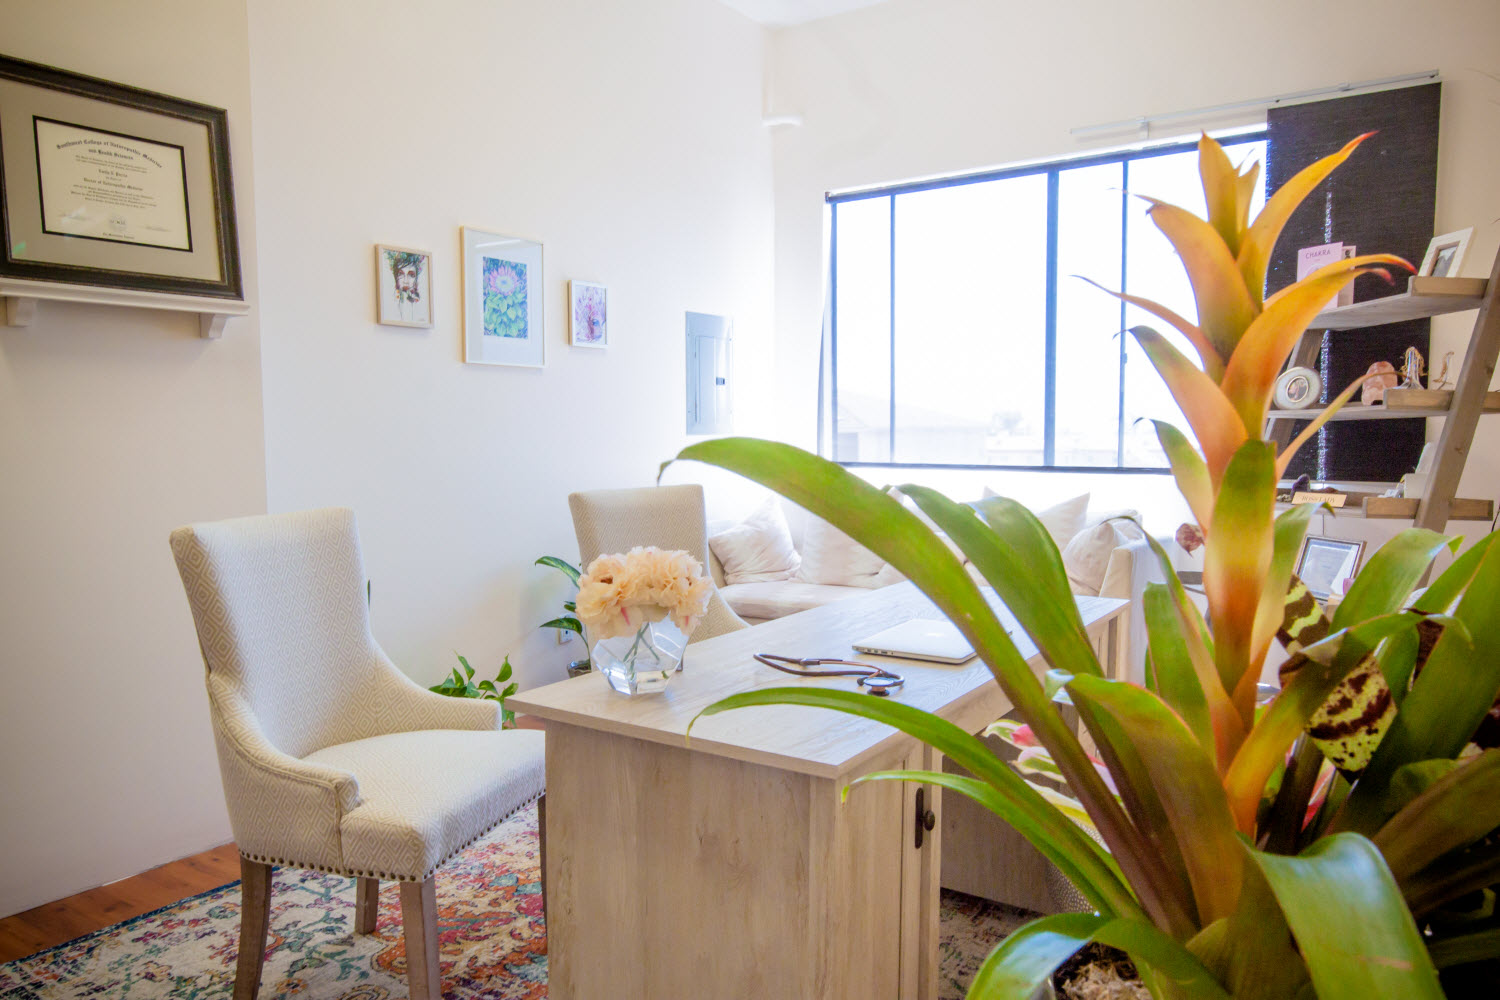 La Jolla San Diego Wellness Detox Center